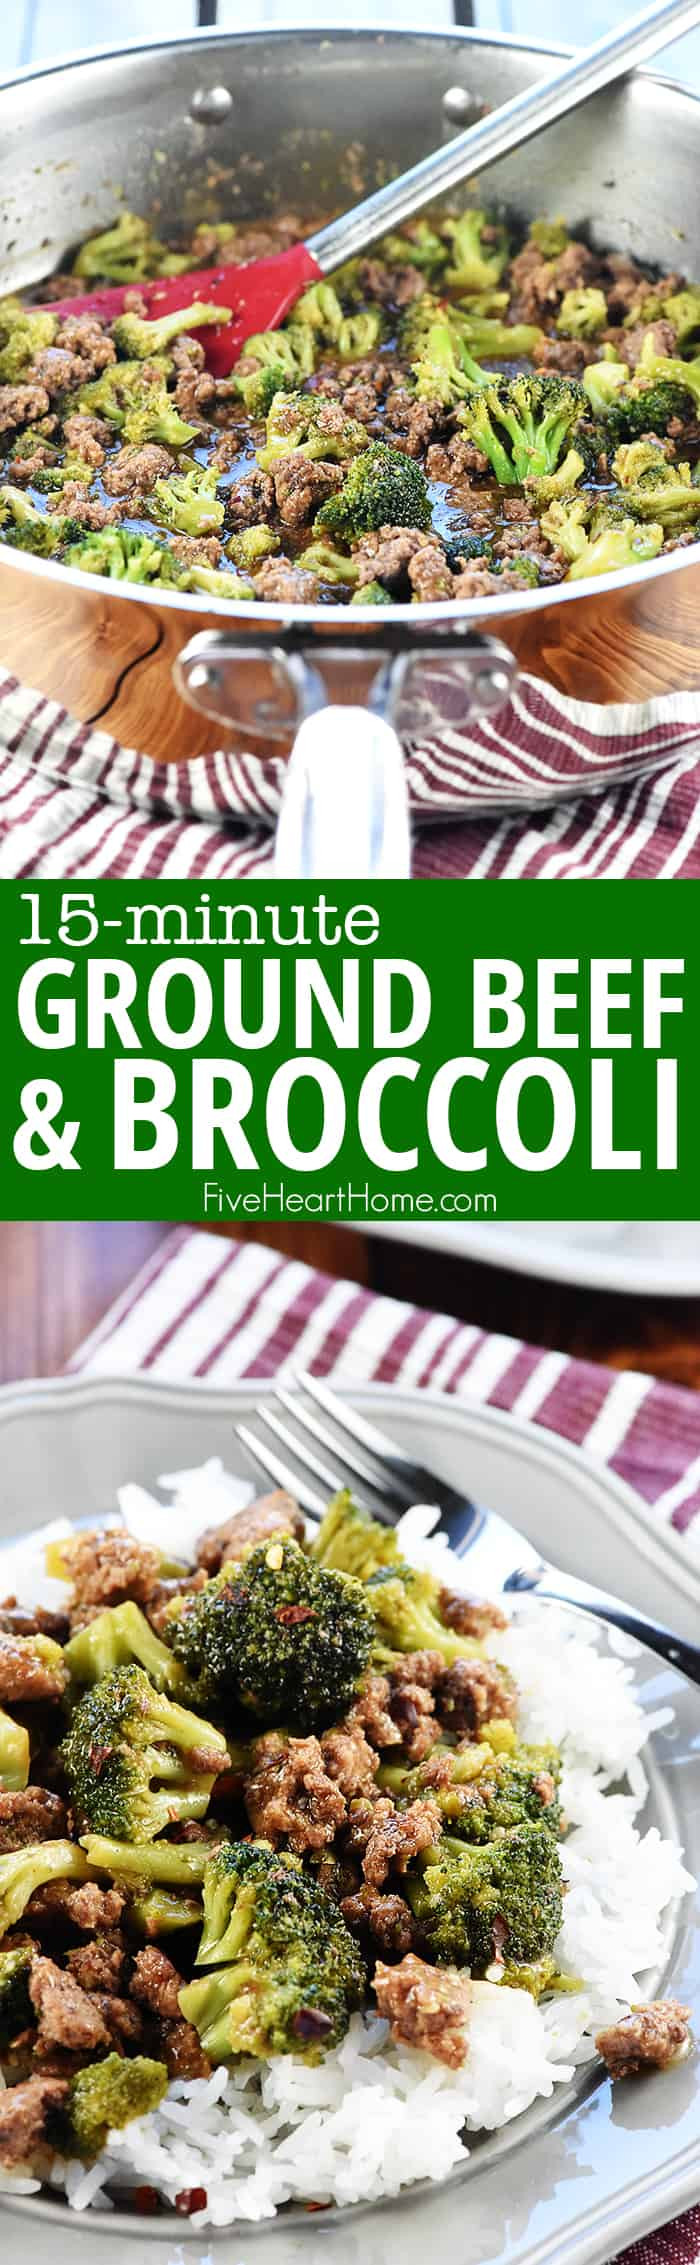 Healthy Ground Beef And Broccoli Recipe  Ground Beef and Broccoli